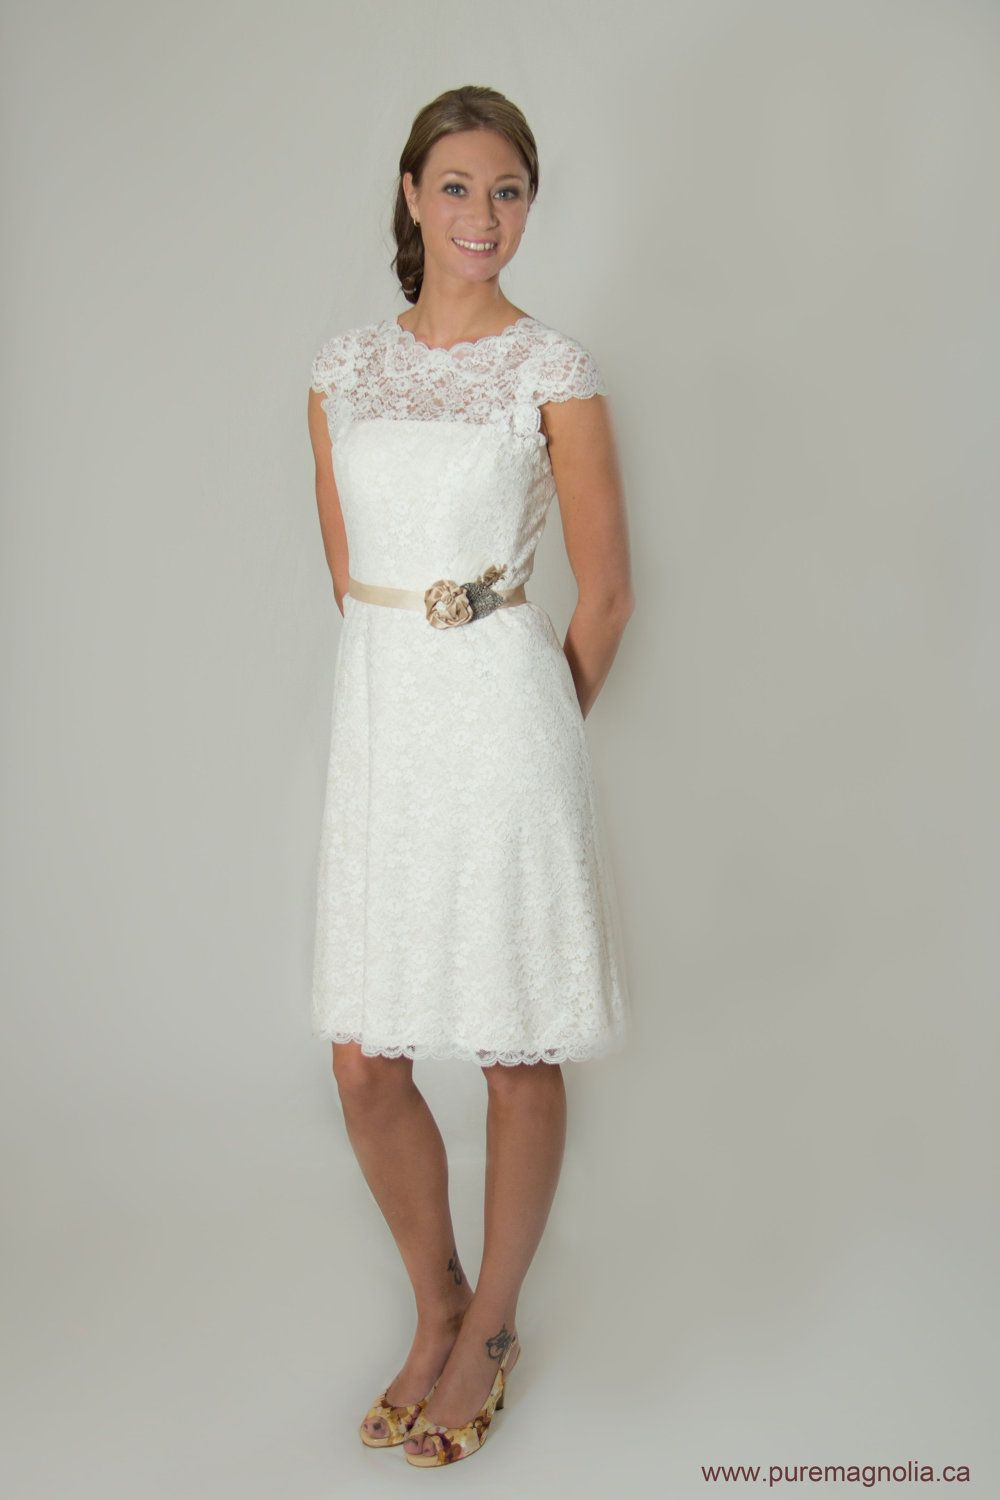 Simple white wedding dresses  Lace Short Wedding Dress Cap Sleeves Low Back White Cotton Plus Size